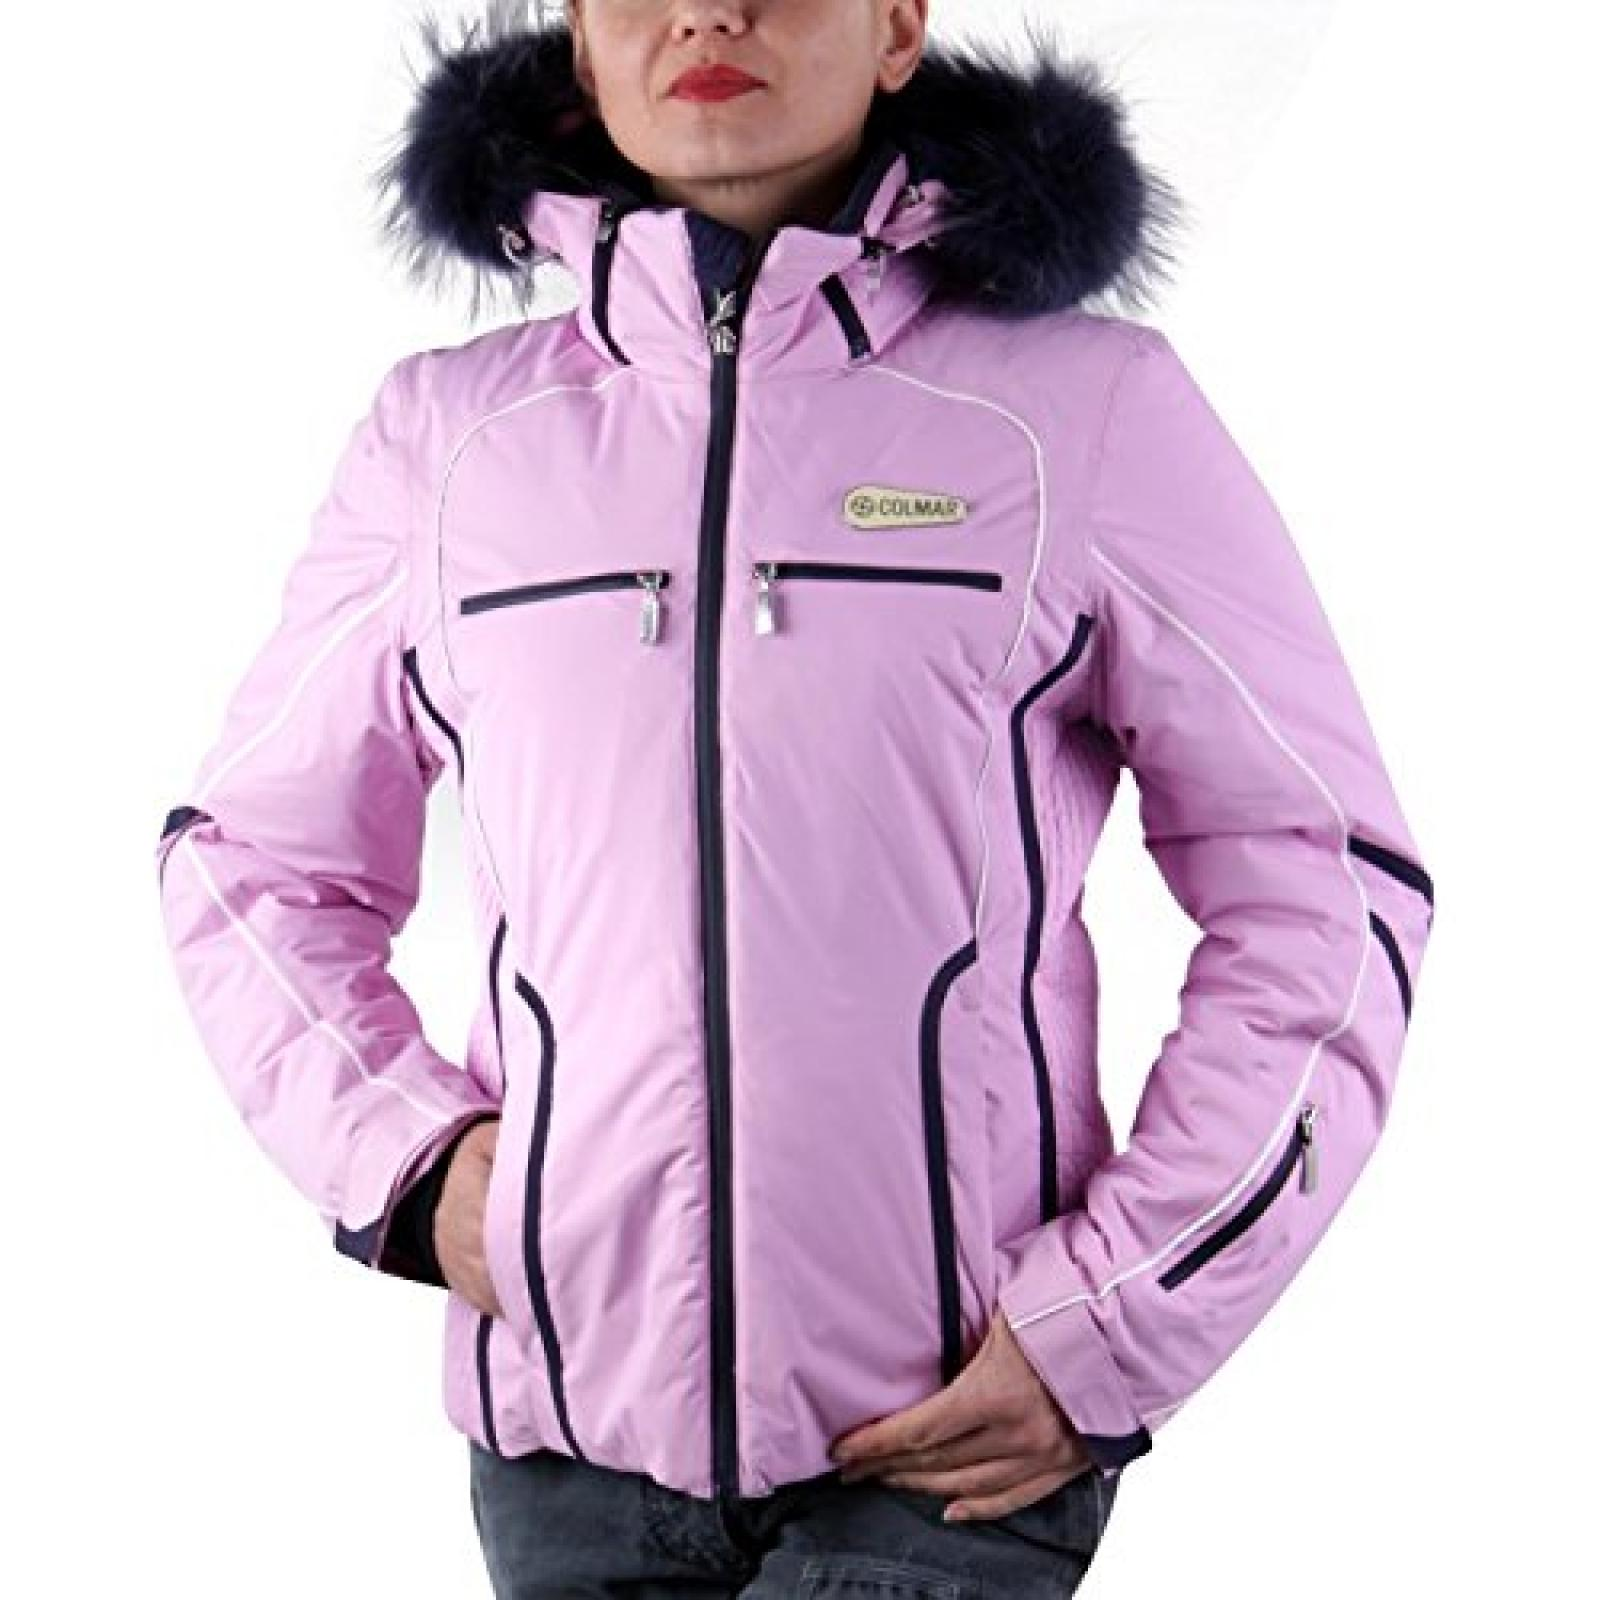 COLMAR Damen Winter Funktions Ski Jacke Gemma Rose F2014